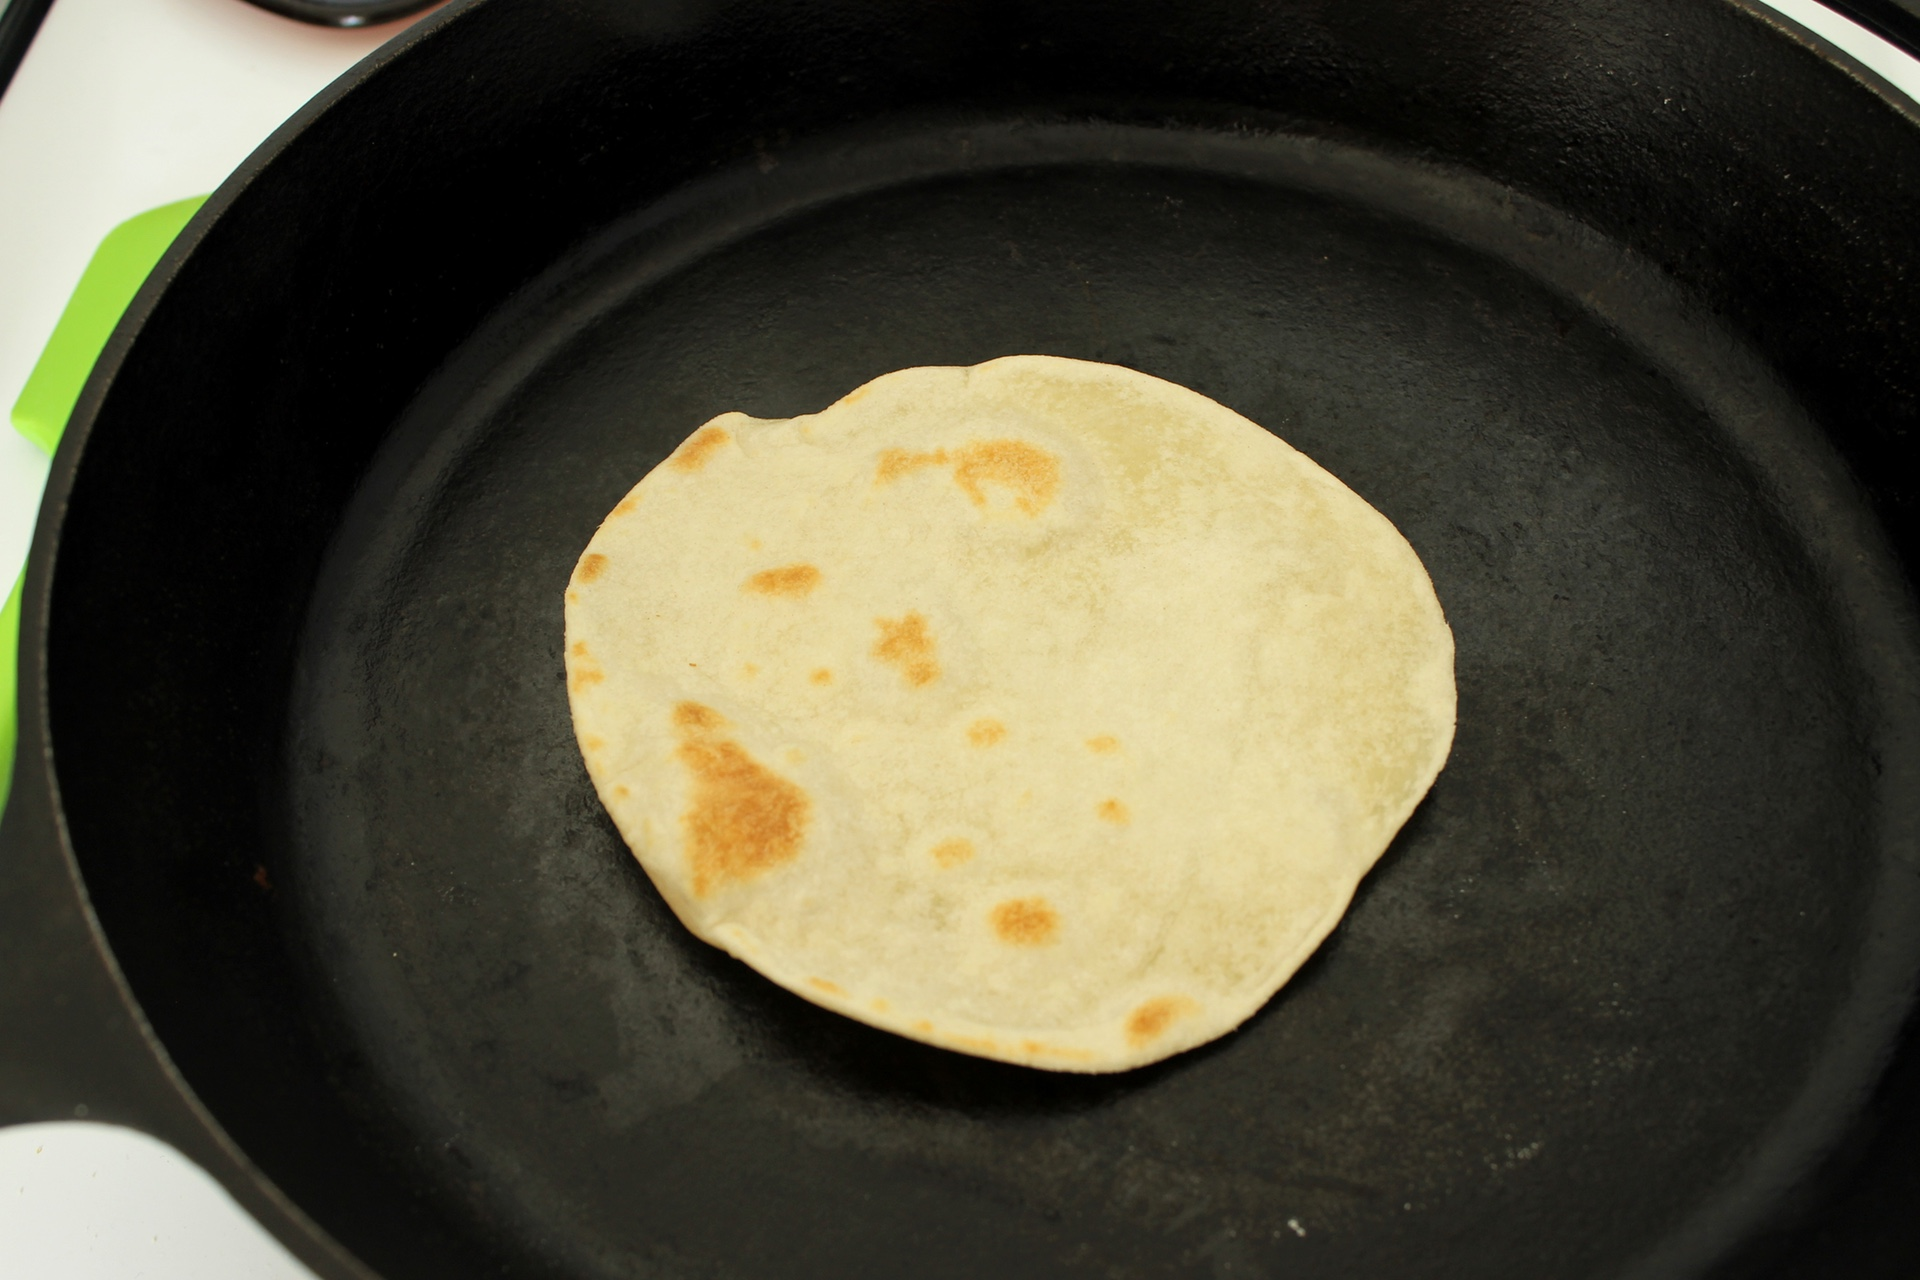 Each side of the tortilla should have golden brown spots.